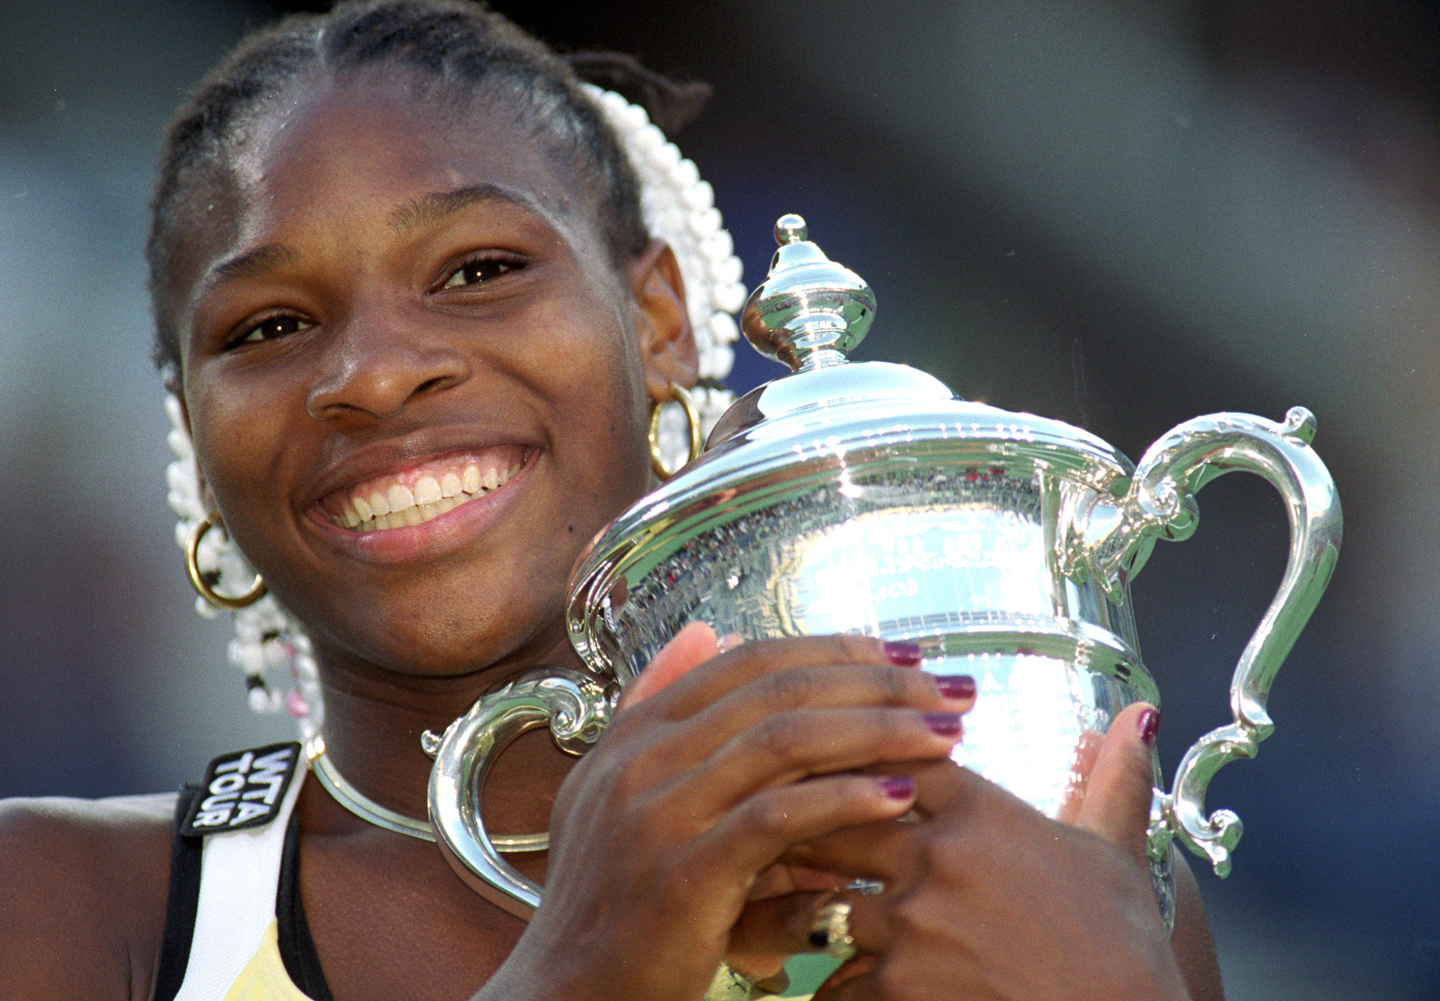 A close up of Serena Williams of the USA as she poses with her trophy after the match between Martina Hingis of Switzerland in the US Open at the USTA National Tennis Center in Flushing Meadows, New York. Williams defeated Hingis 6-3, 7-6 (7-4).